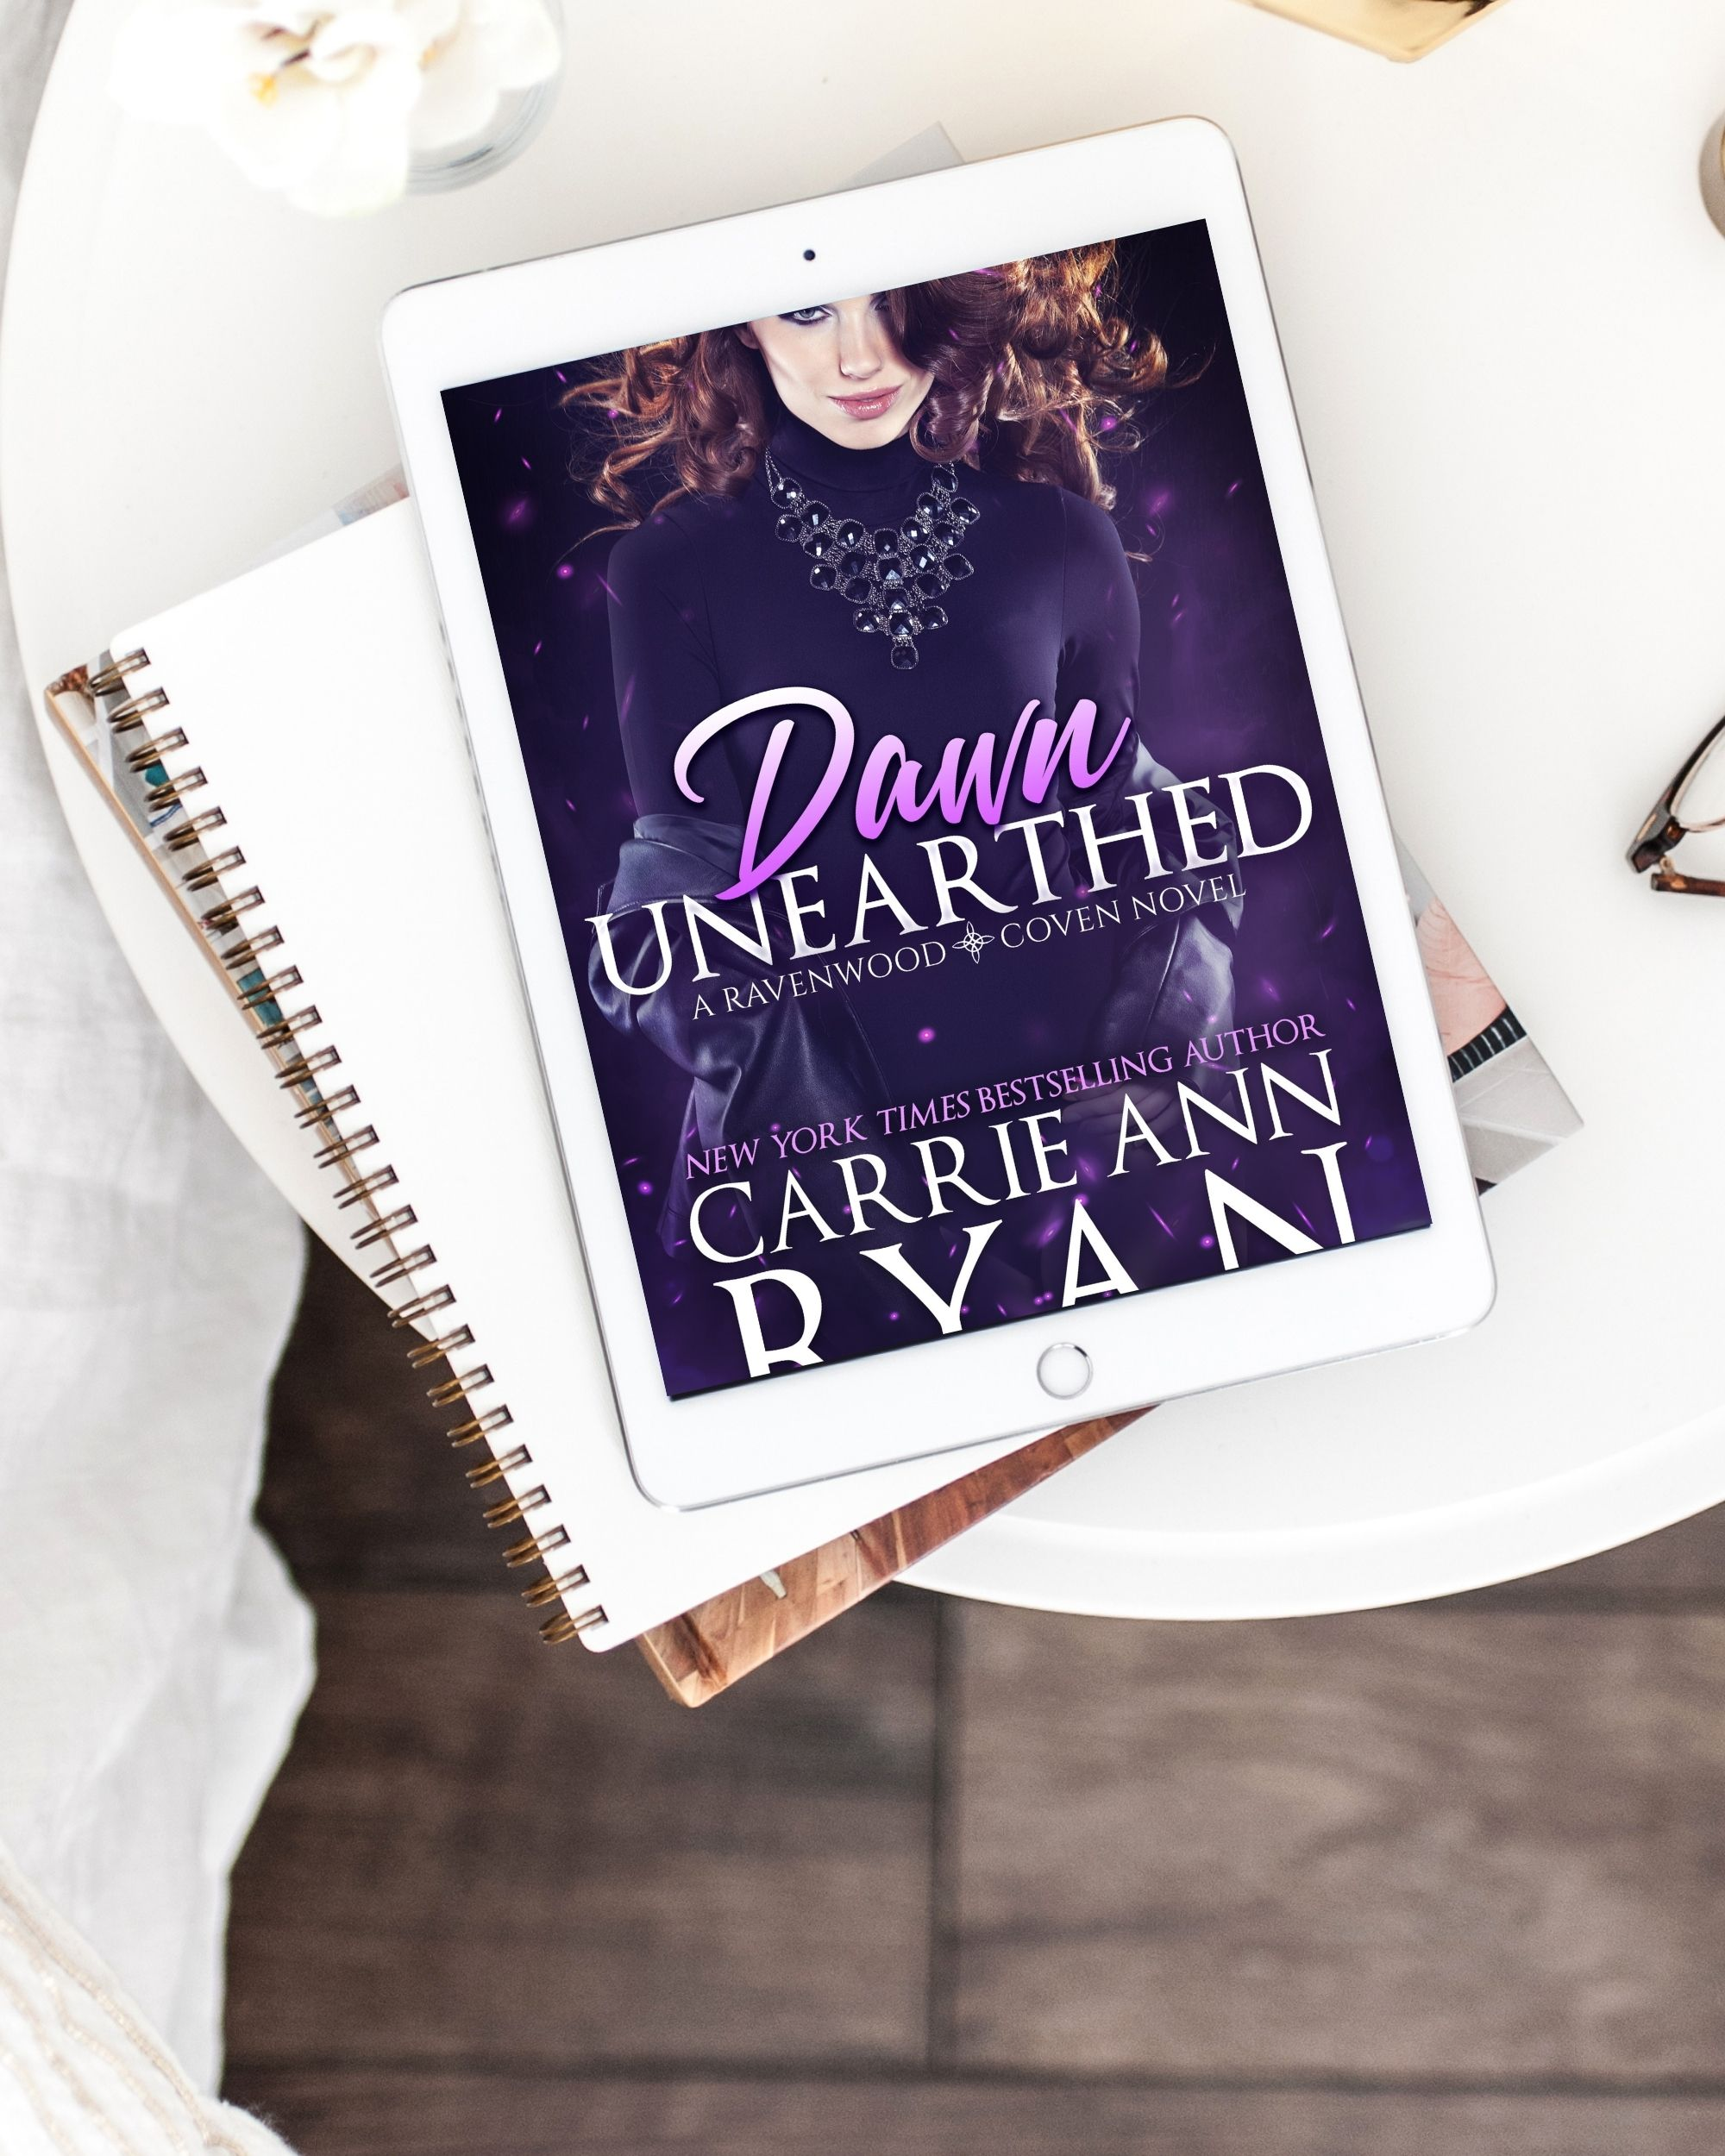 Dawn Unearthed by Carrie Ann Ryan - Wickedly Romance